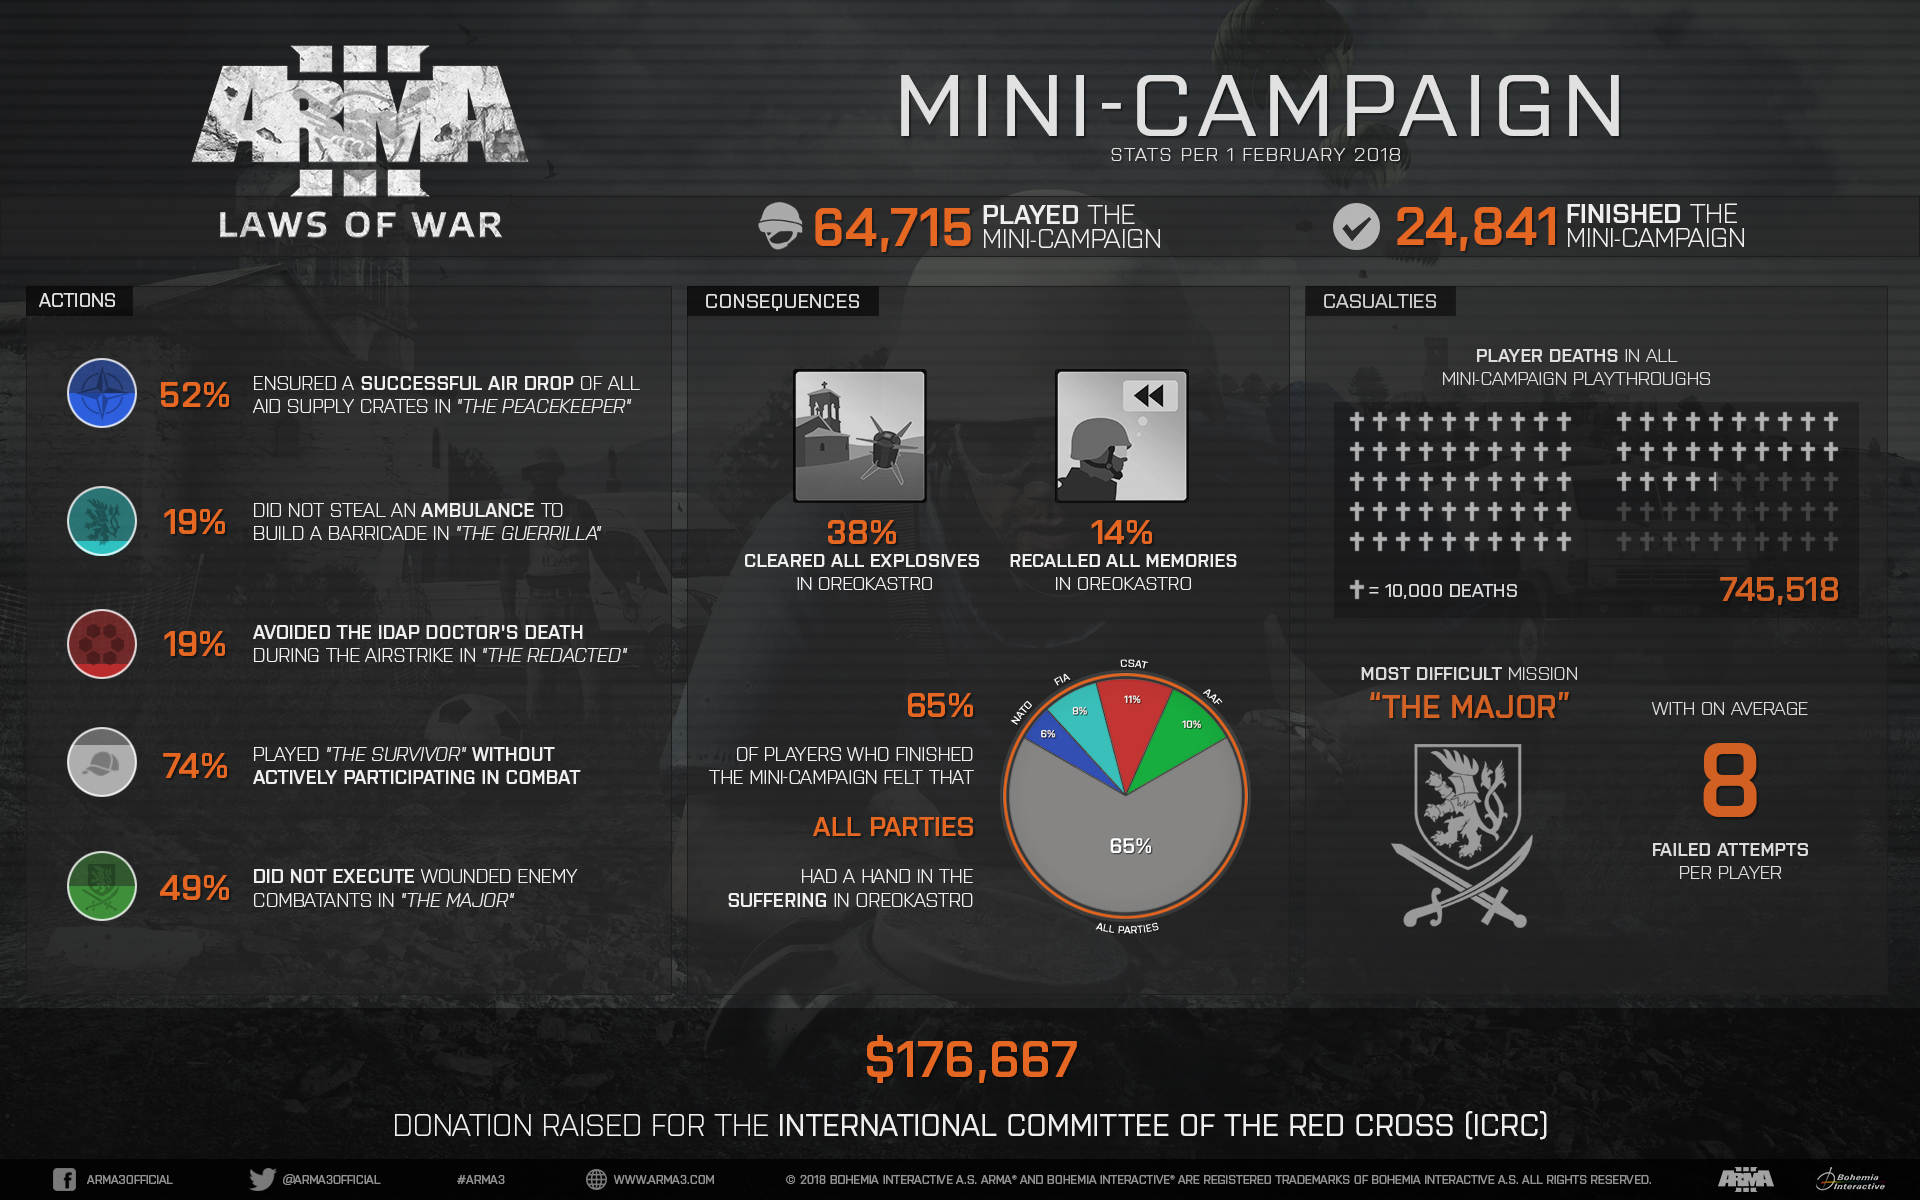 Arma 3 Laws of War DLC Raises $176,667 For Charity Infographic